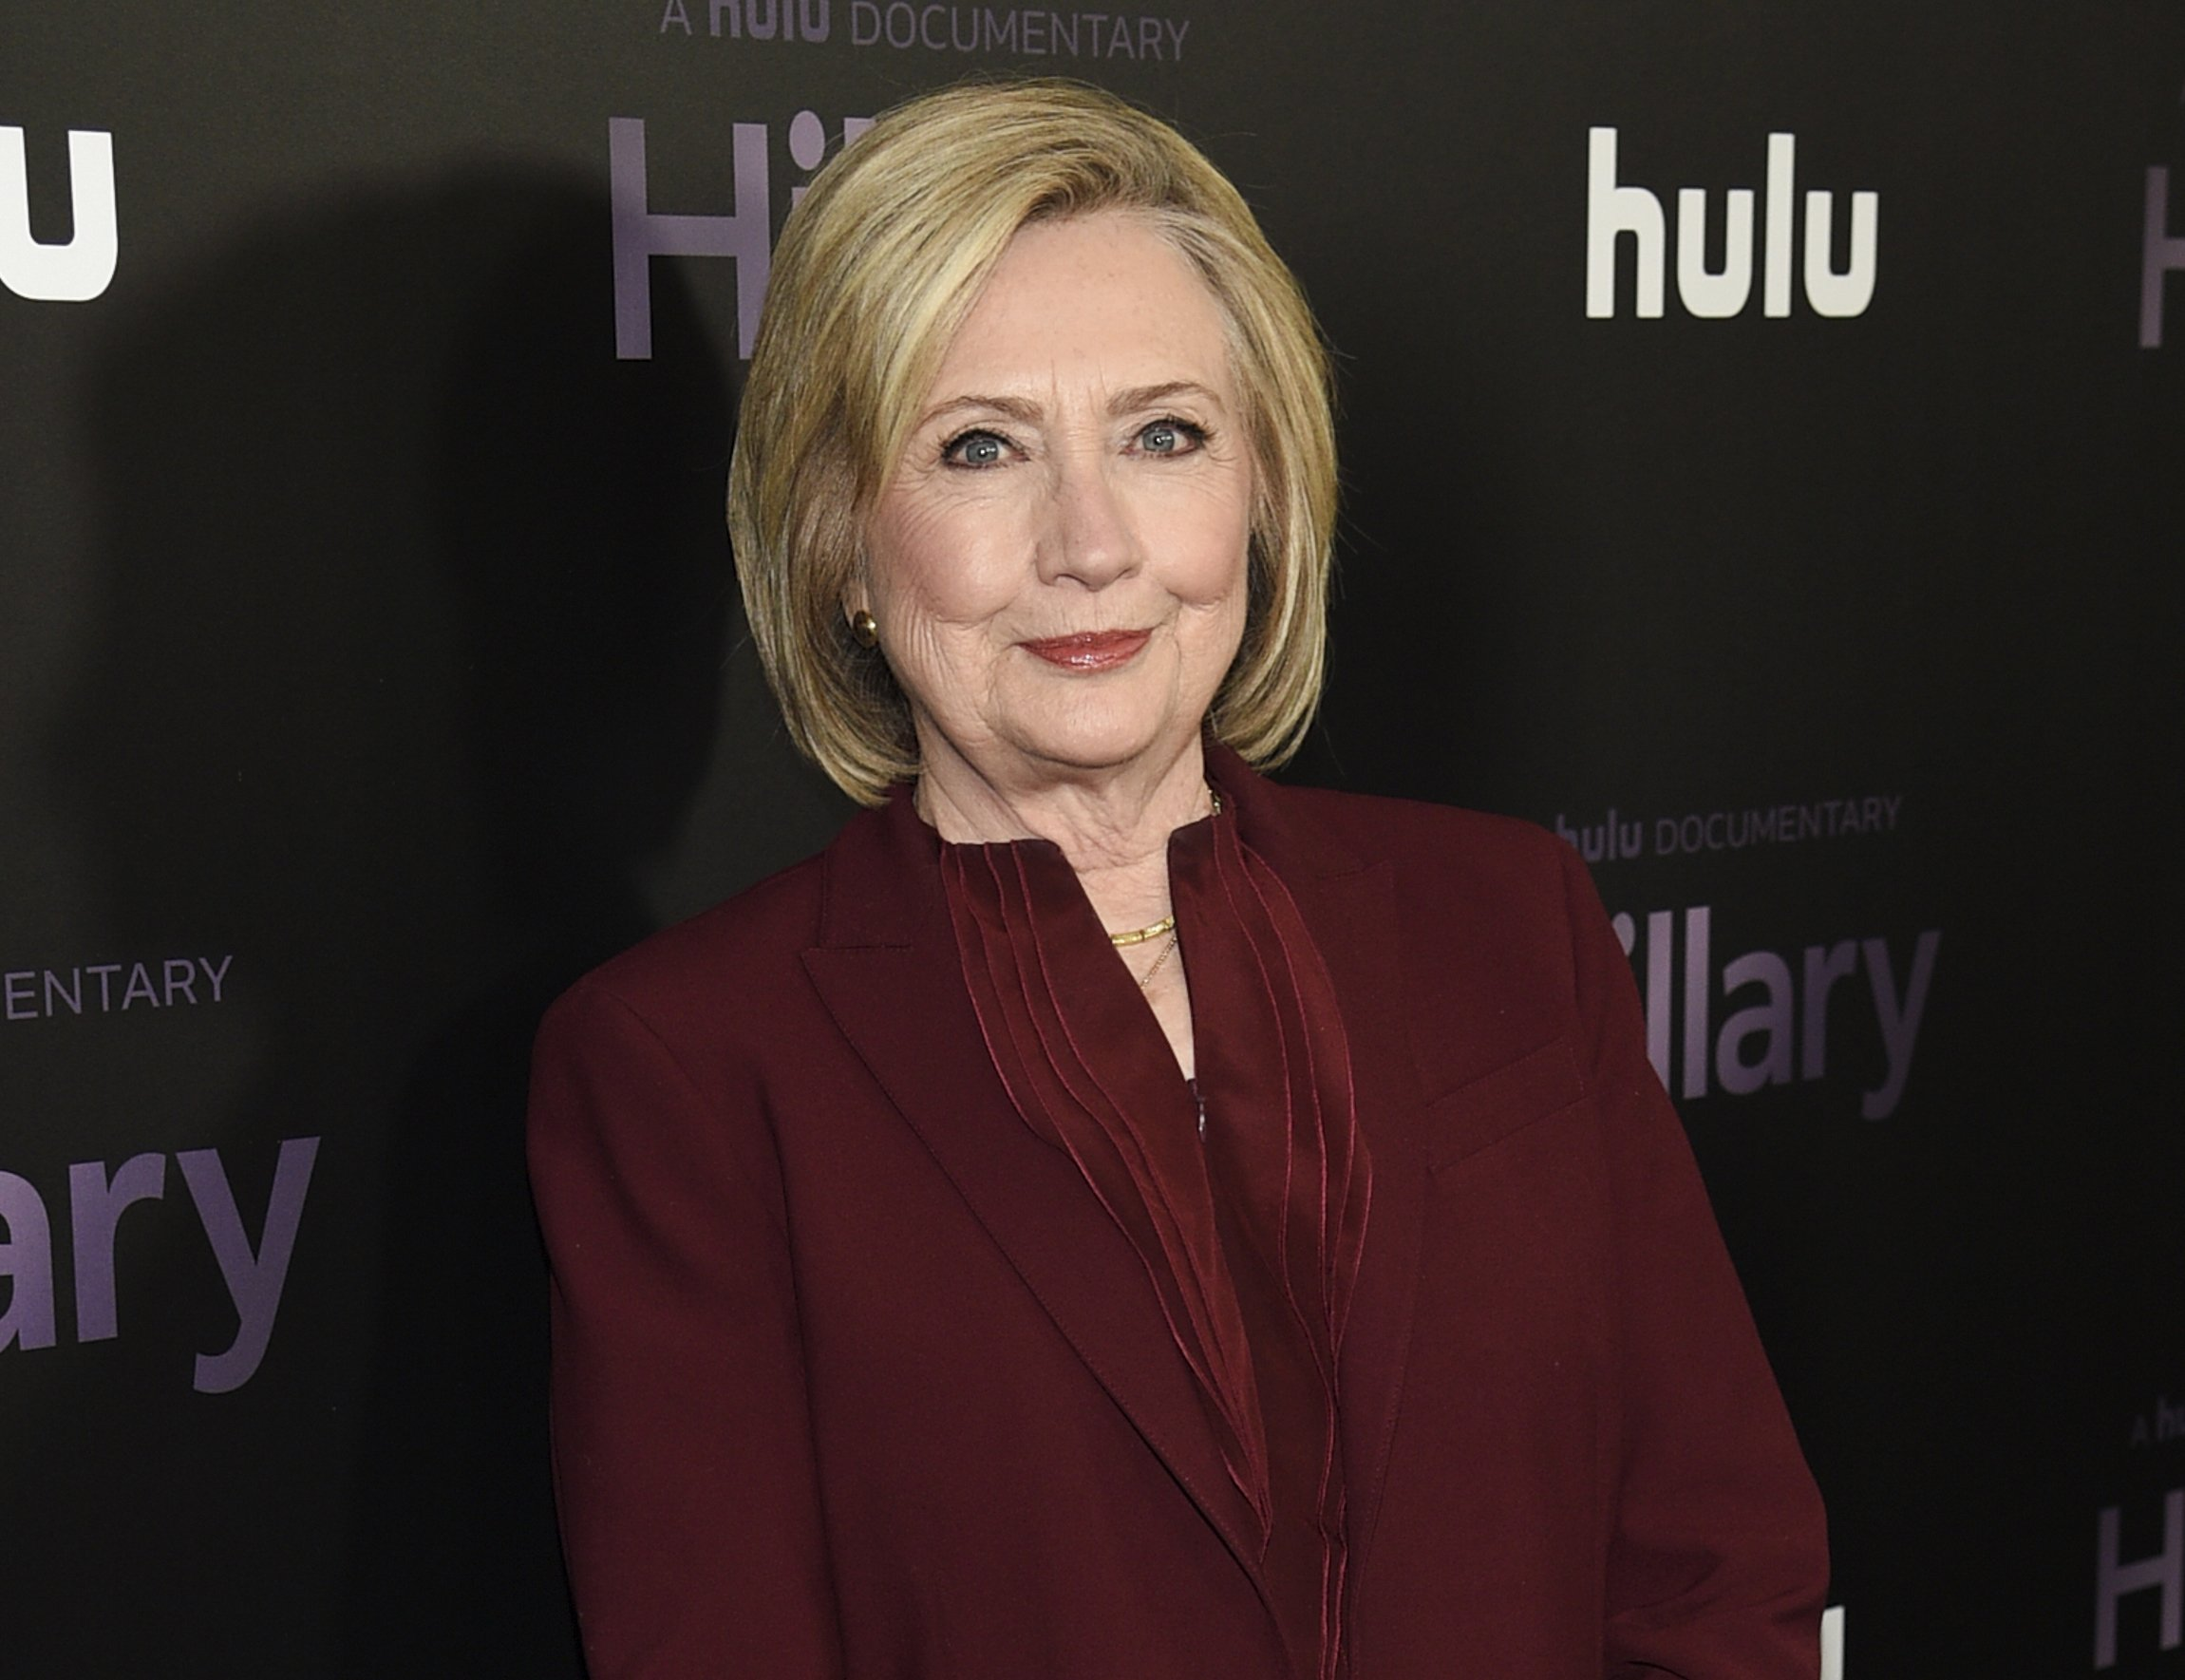 HILLARY CLINTON BIO, AGE, NET WORTH, GOOD VIBES, COMPLETE WIKI, 2021 FACTS AND FAMILY